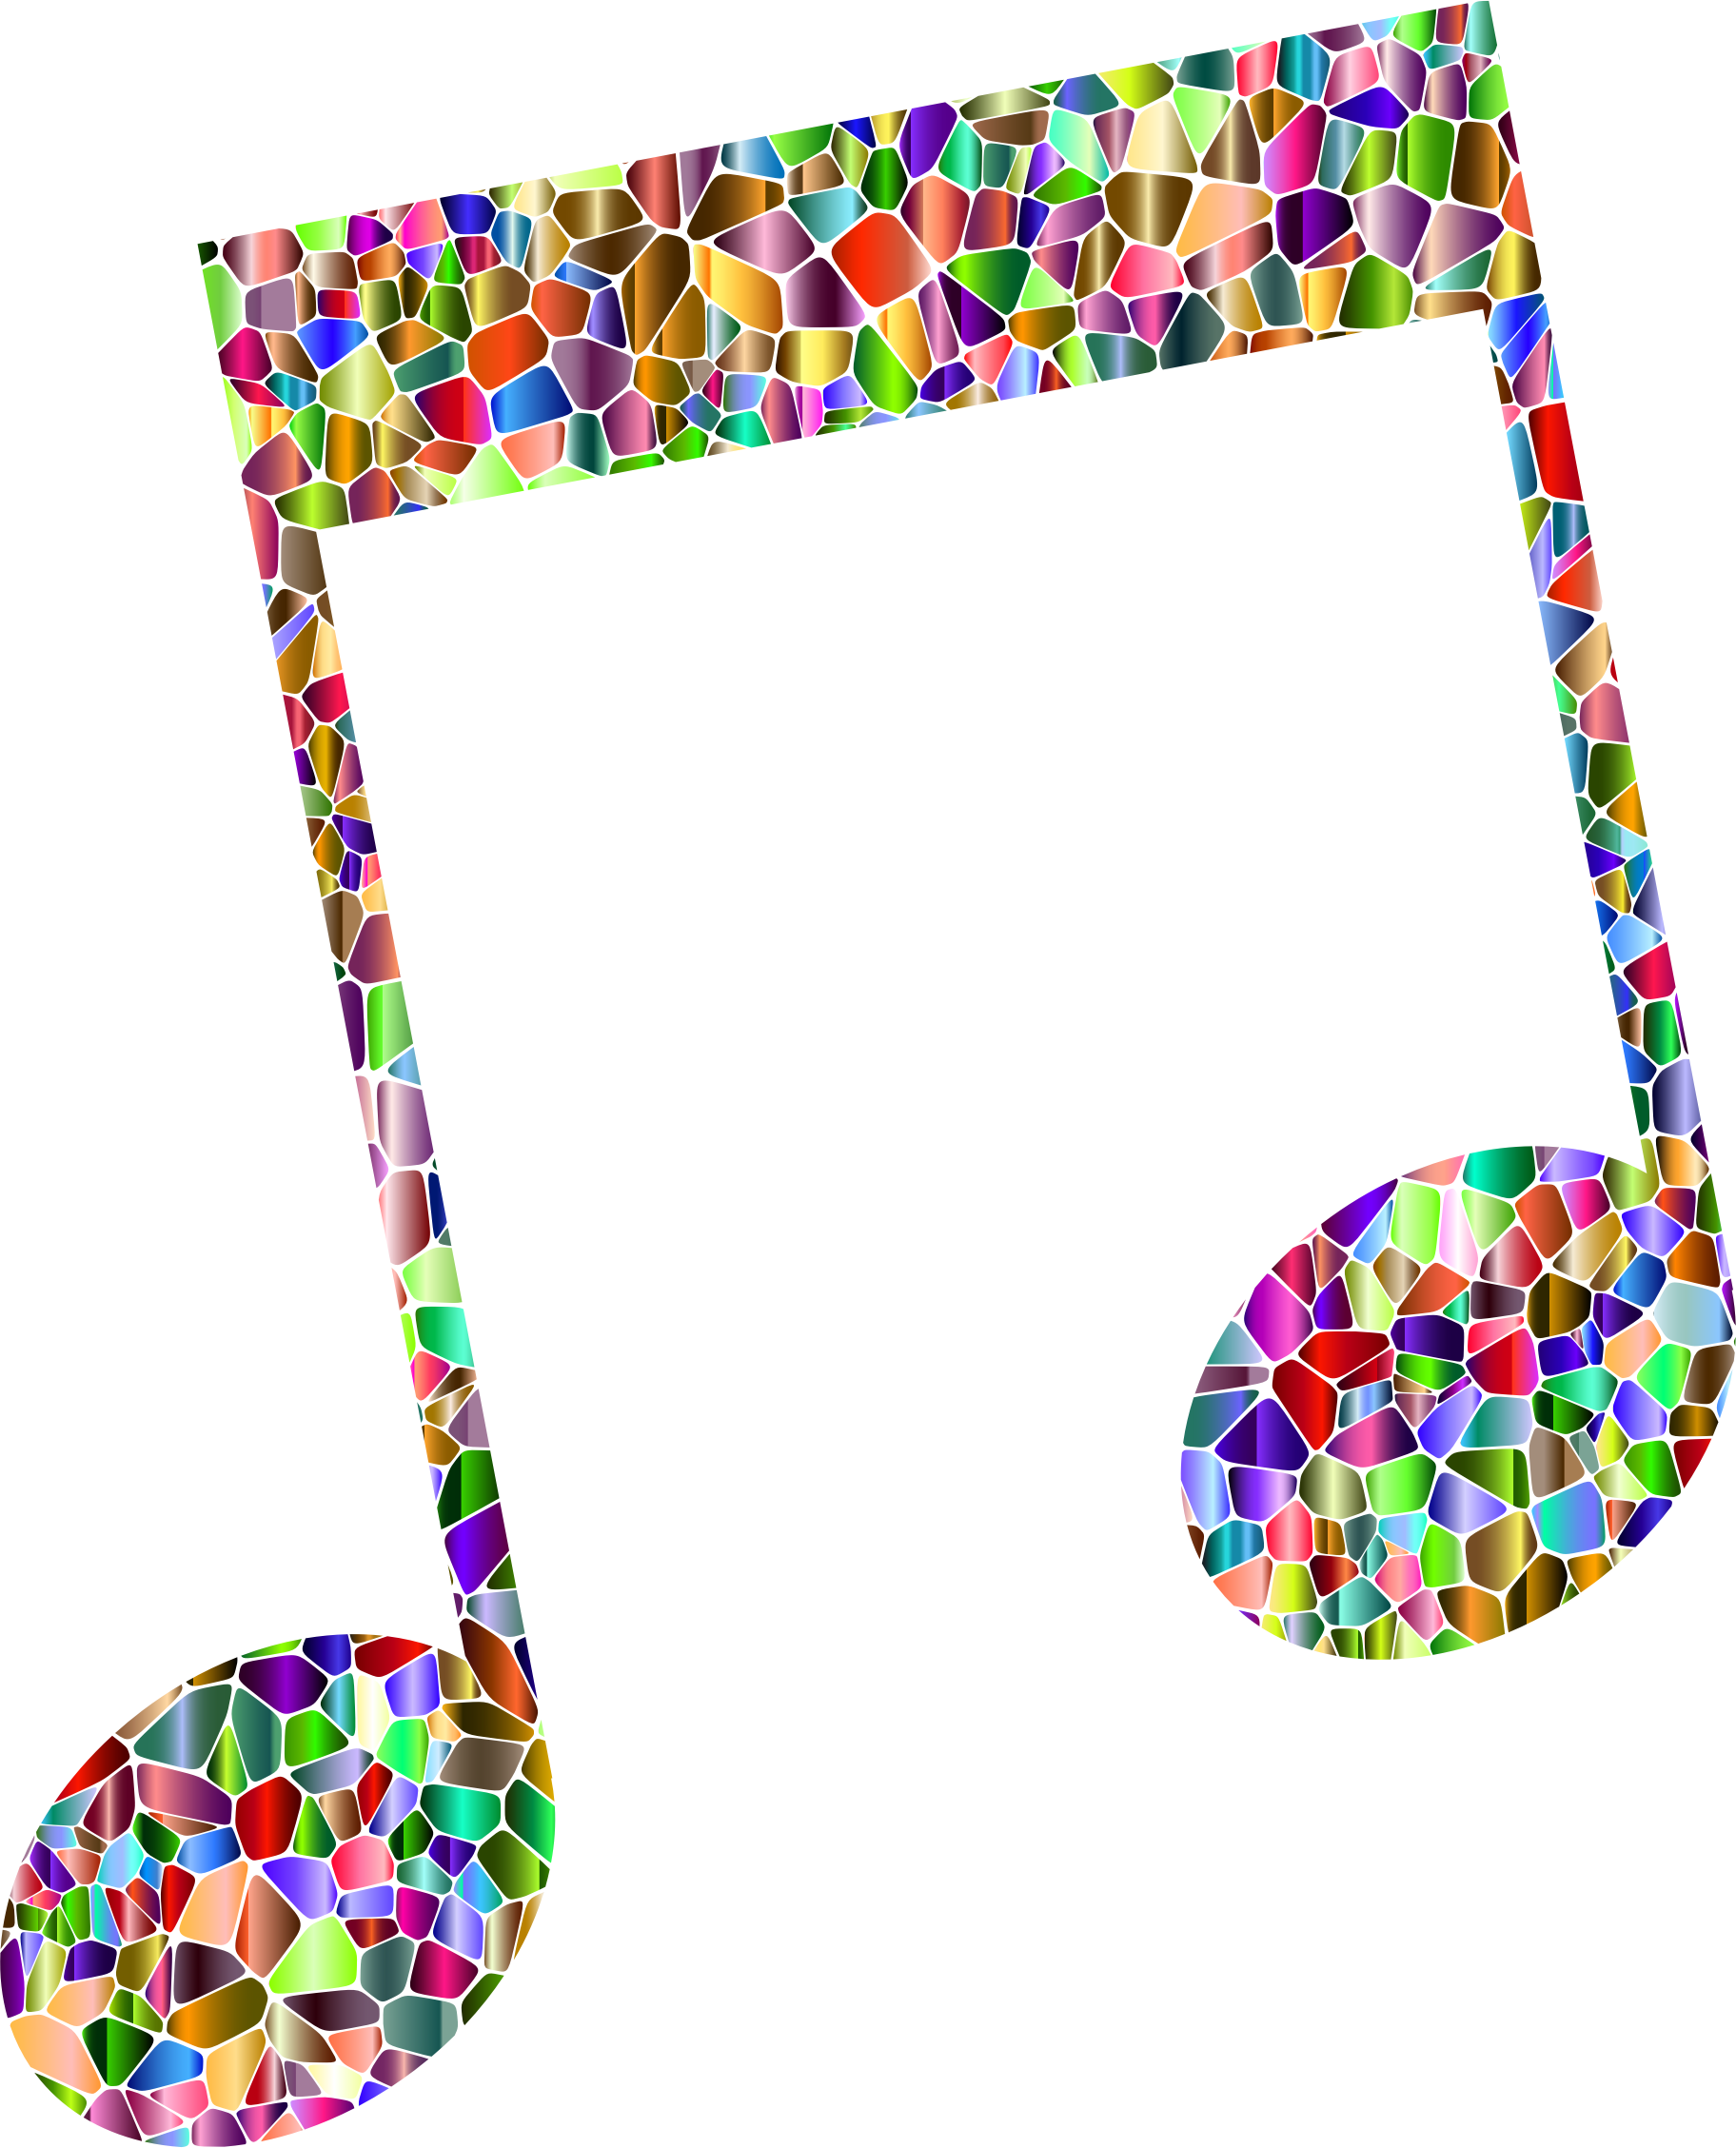 Vivid Chromatic Tiled Musical Note 15 by GDJ